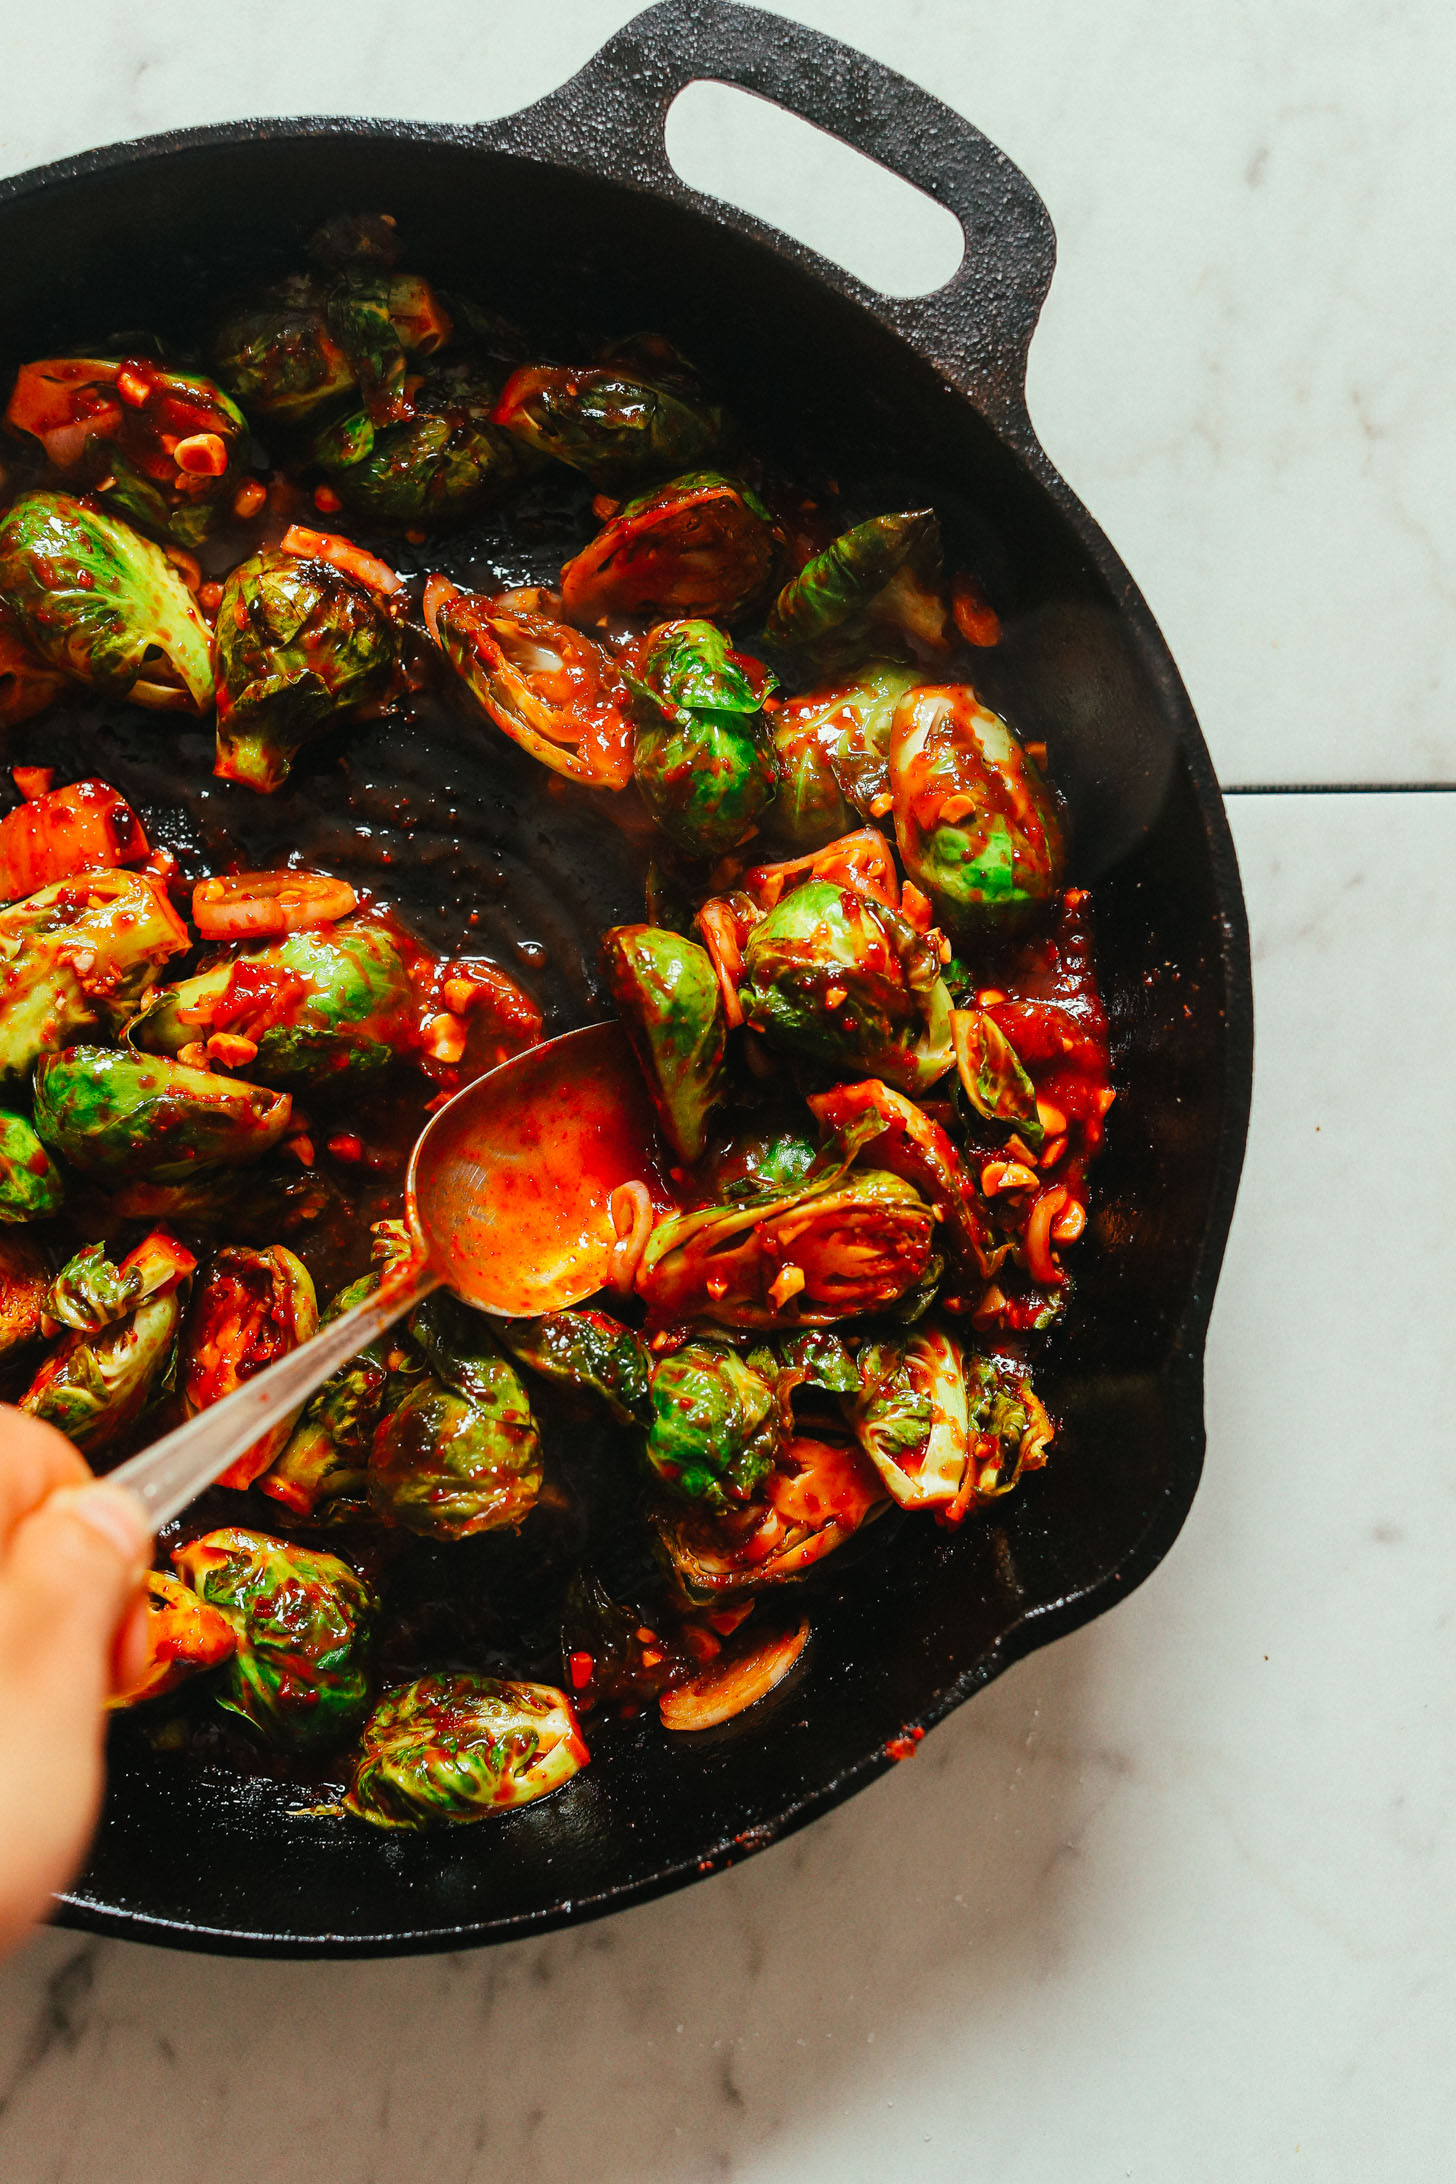 Cast-iron skillet filled with our vegan Gochujang Brussels Sprouts recipe